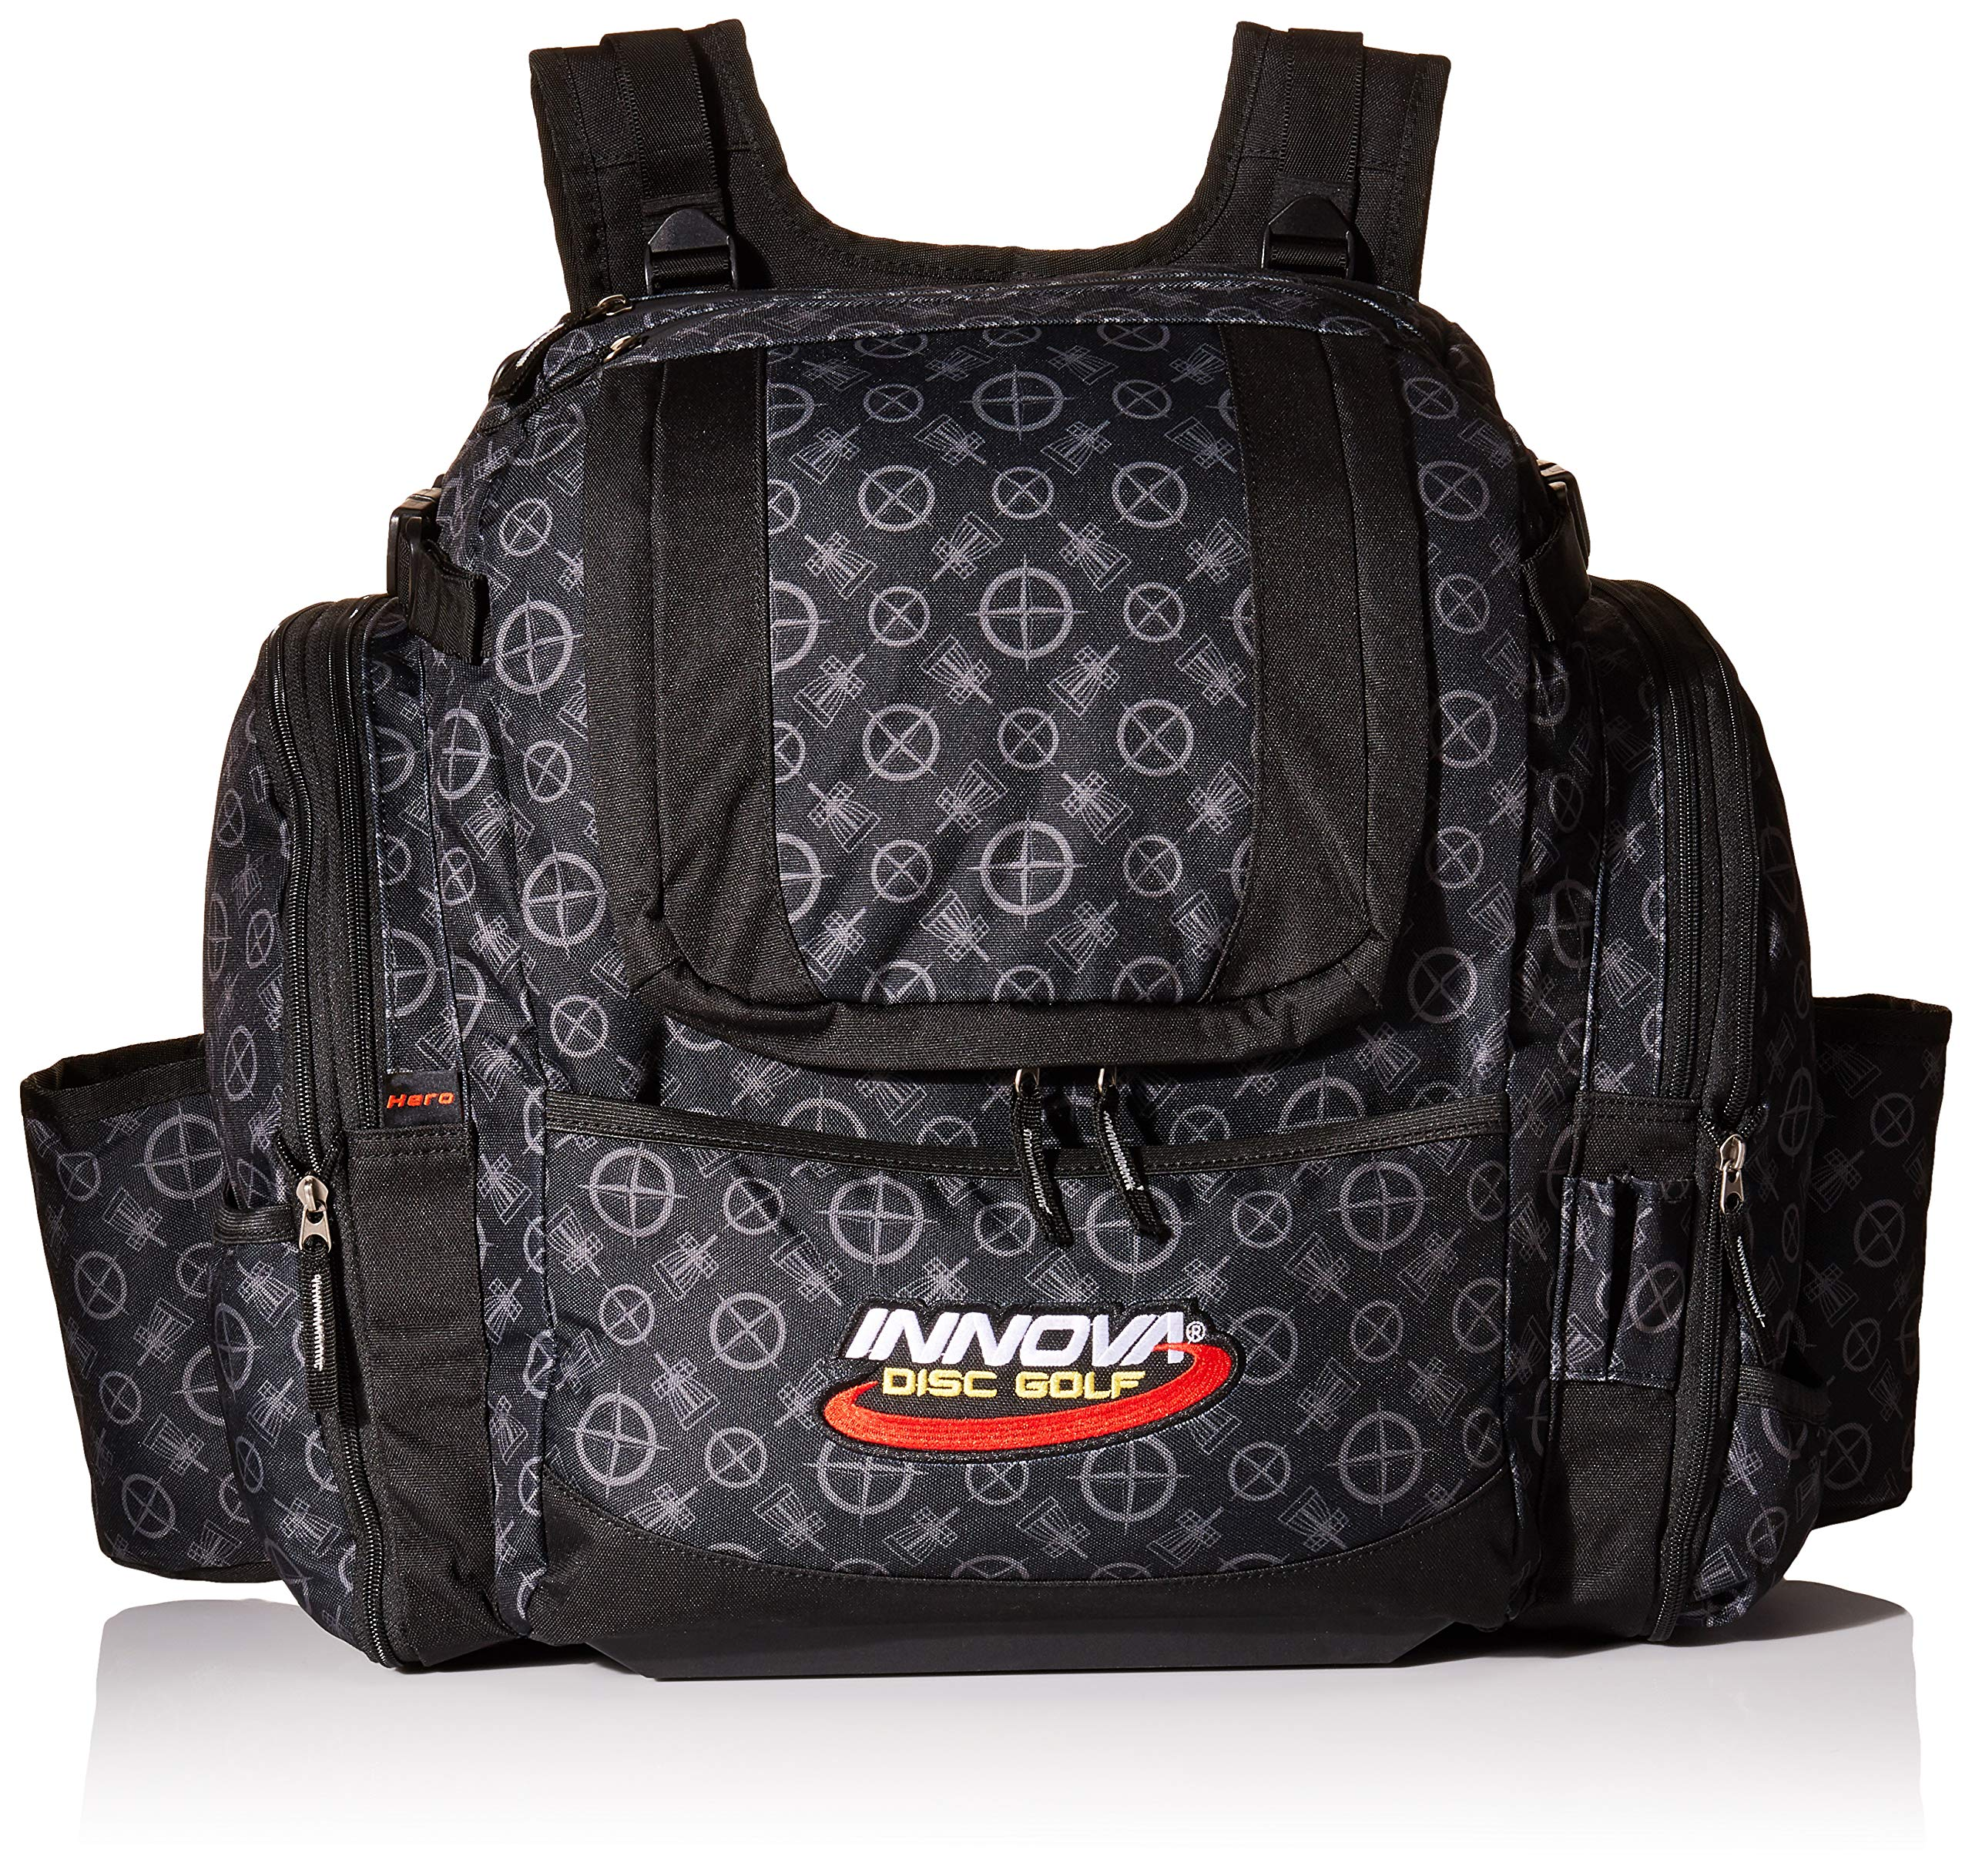 Innova Golf Disc Super Hero Backpack Bag, Black Pattern by Innova Disc Golf